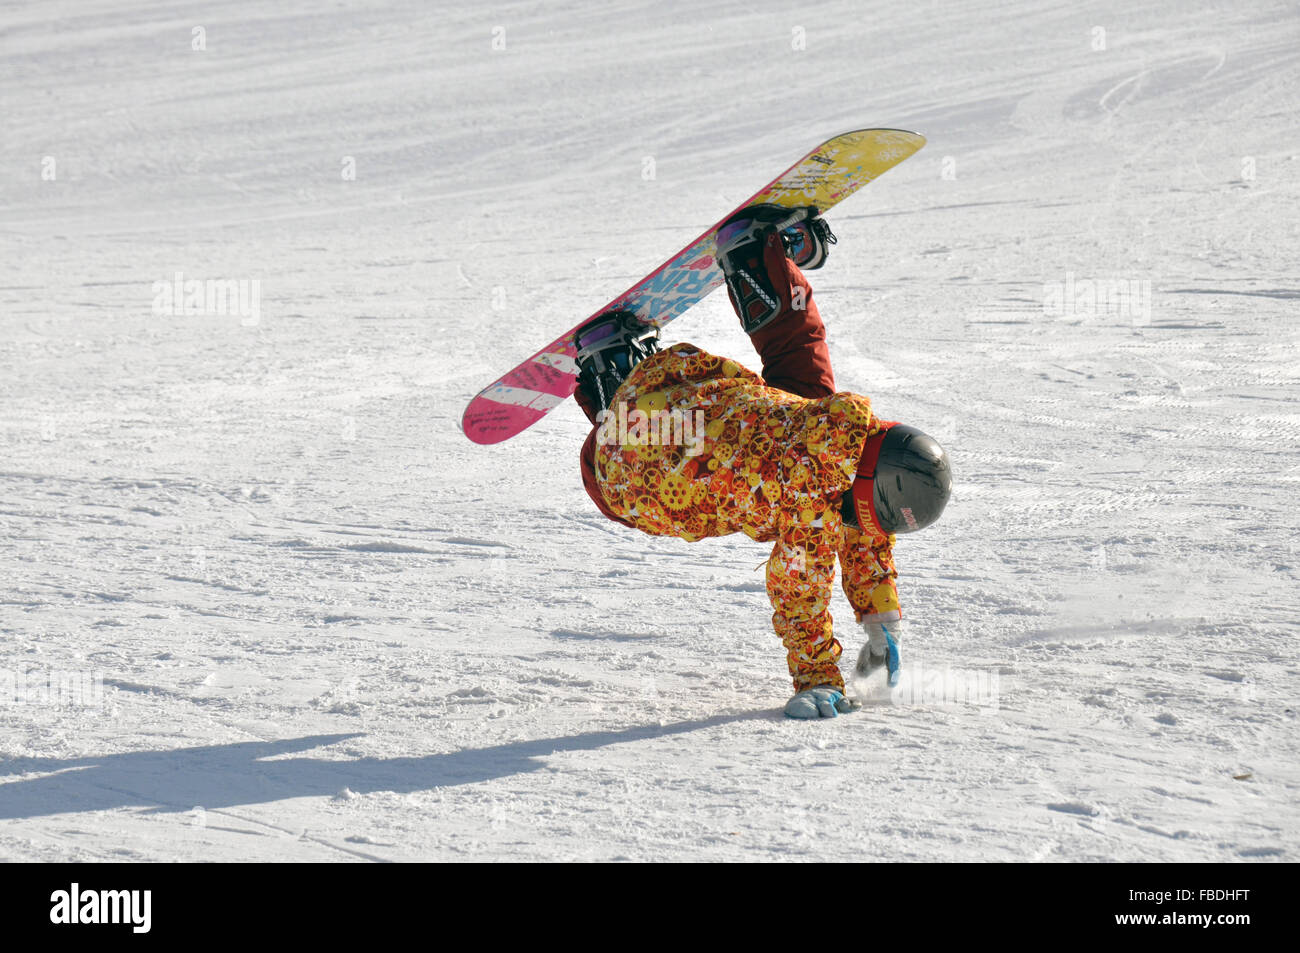 (160115) -- HOLONBUYR, Jan. 15, 2016 (Xinhua) -- A teenager performs acrobatic movement when skiing during a winter Stock Photo